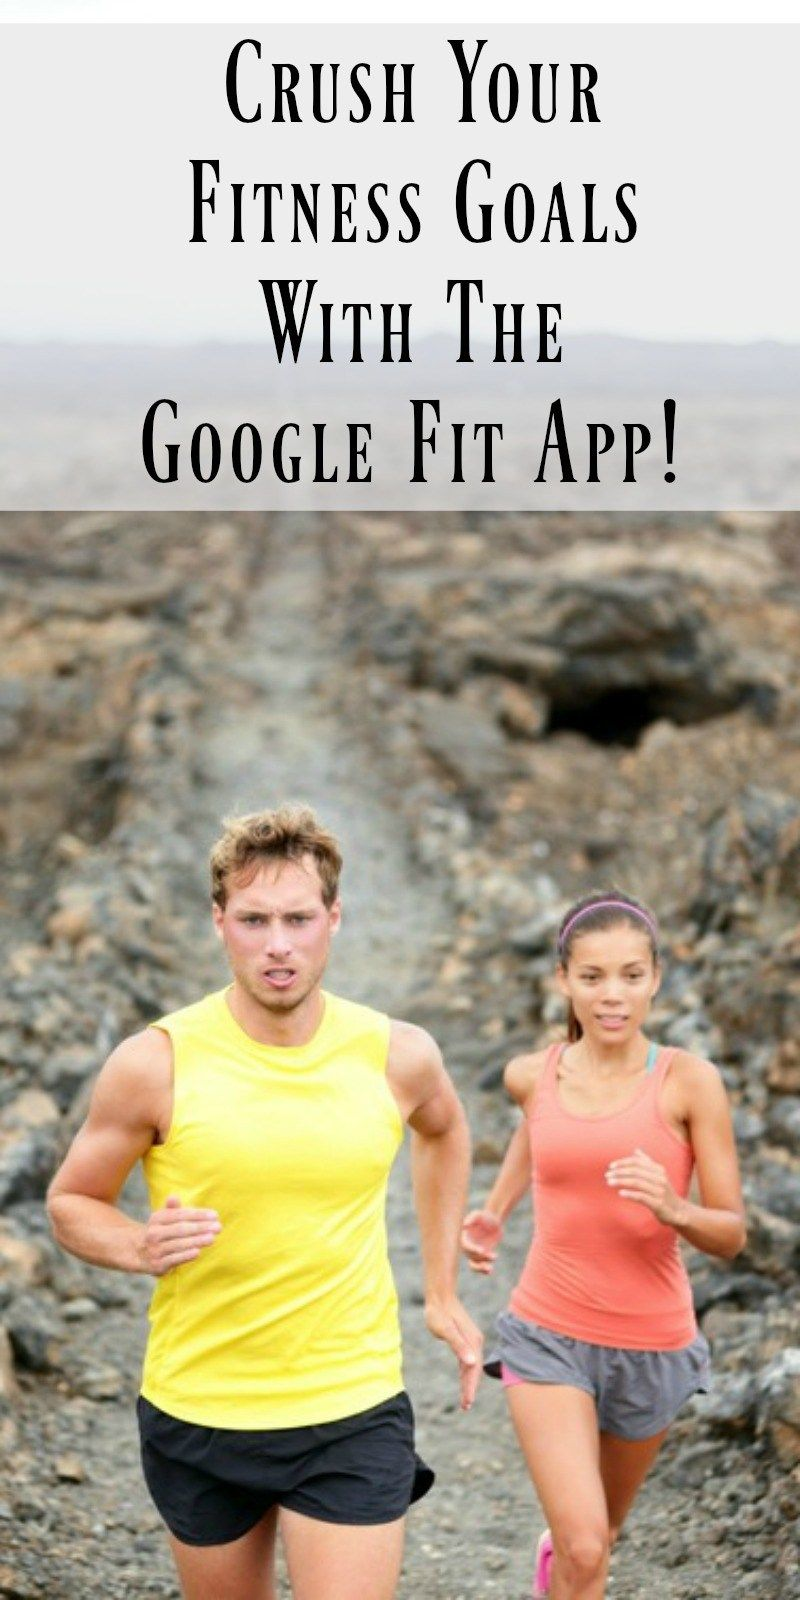 Crush your fitness goals with the Google Fit app! If you are looking for something to help you on the path to a healthy lifestyle, give it a try.